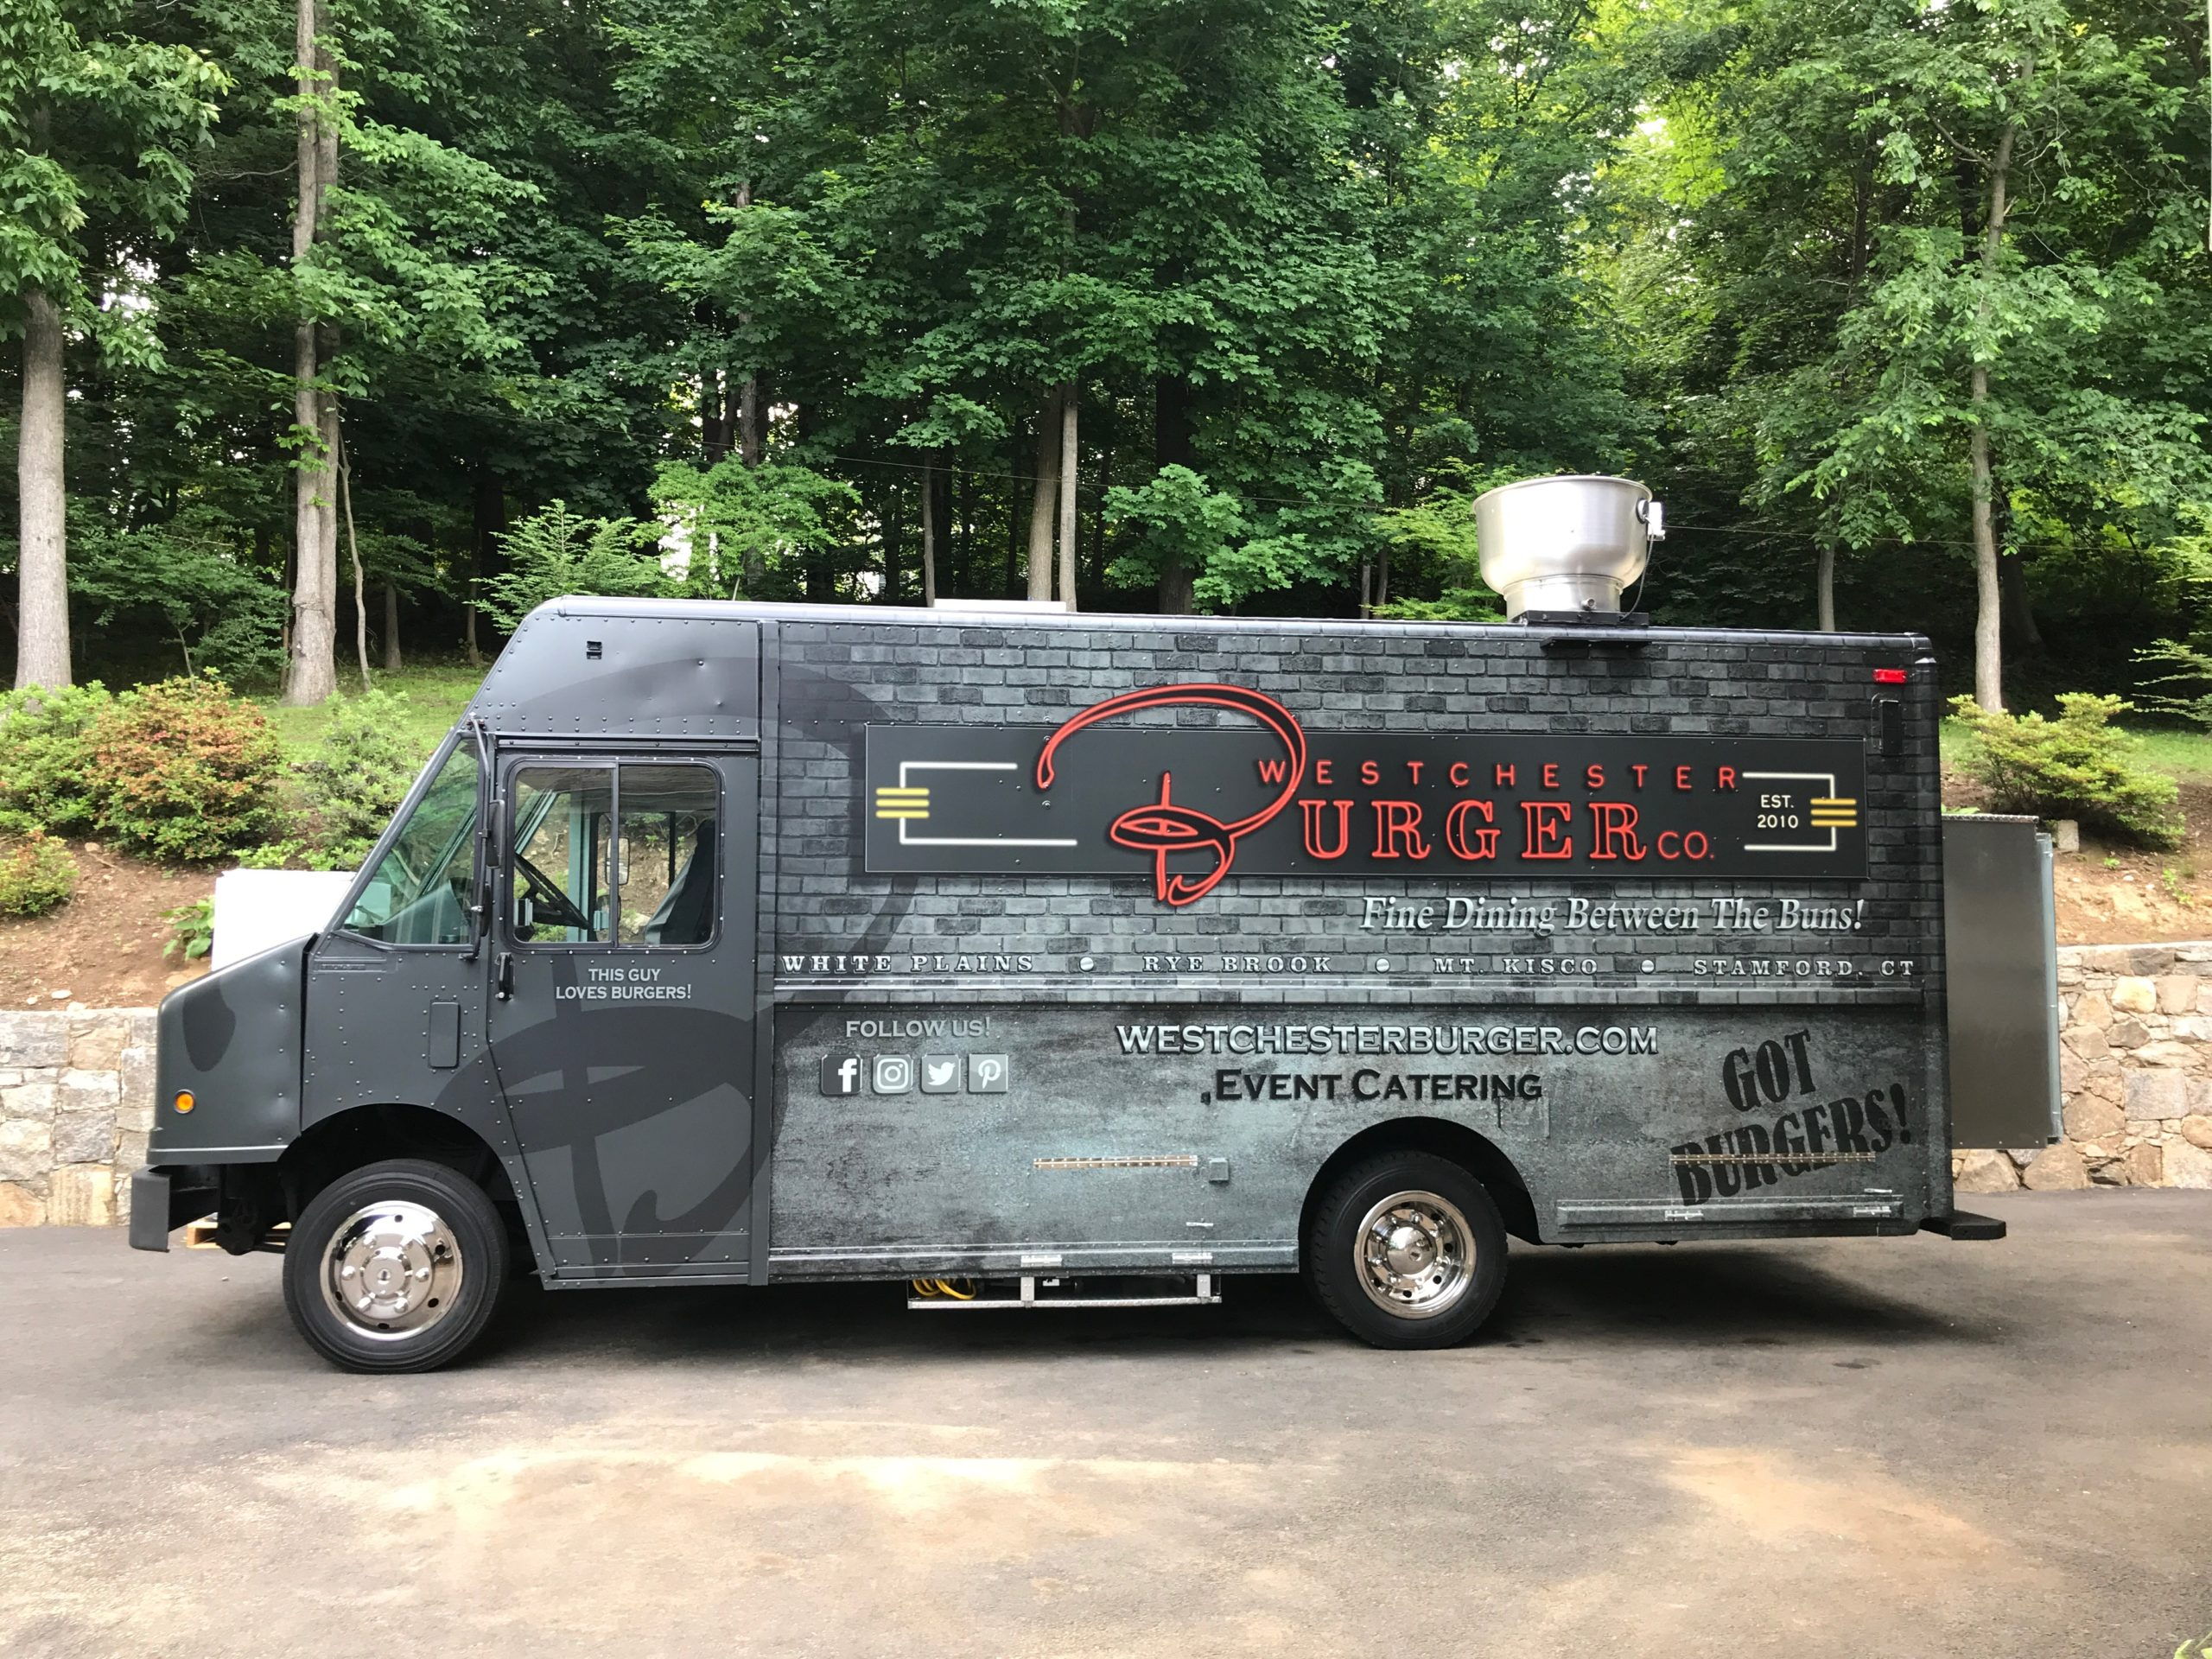 Westchester Burger Co New York Food Trucks American Catering